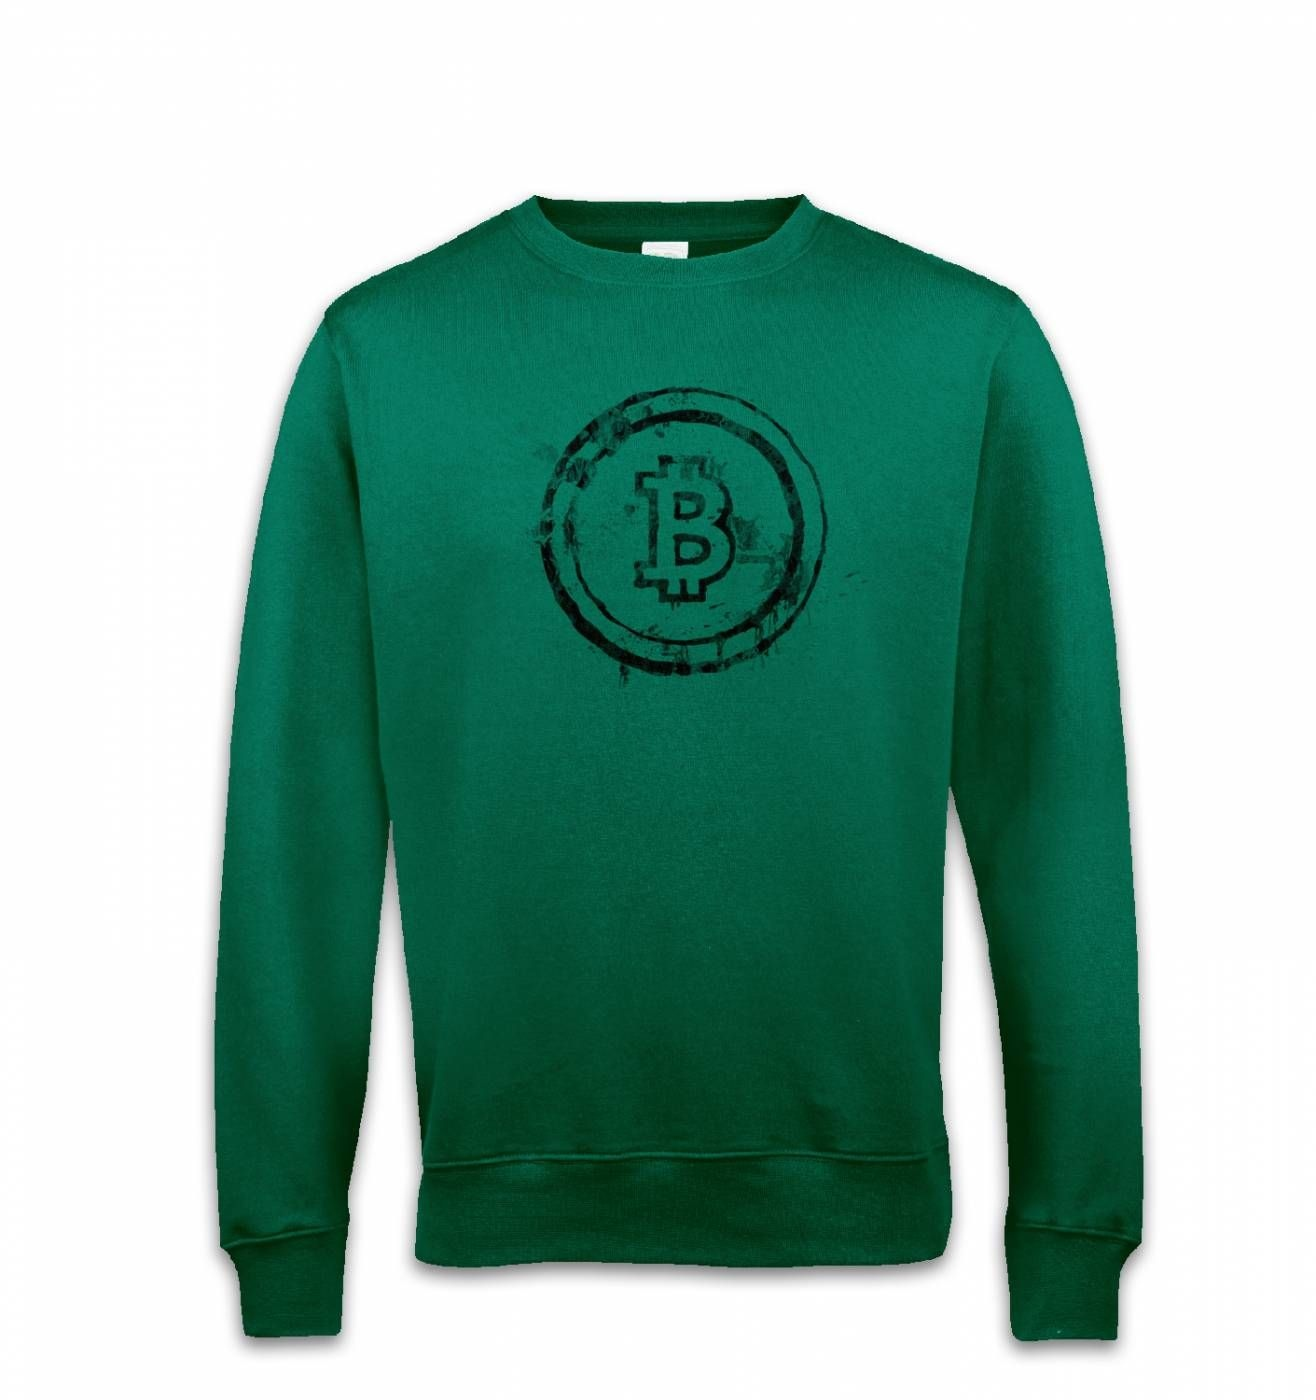 Bitcoin Splatter sweatshirt